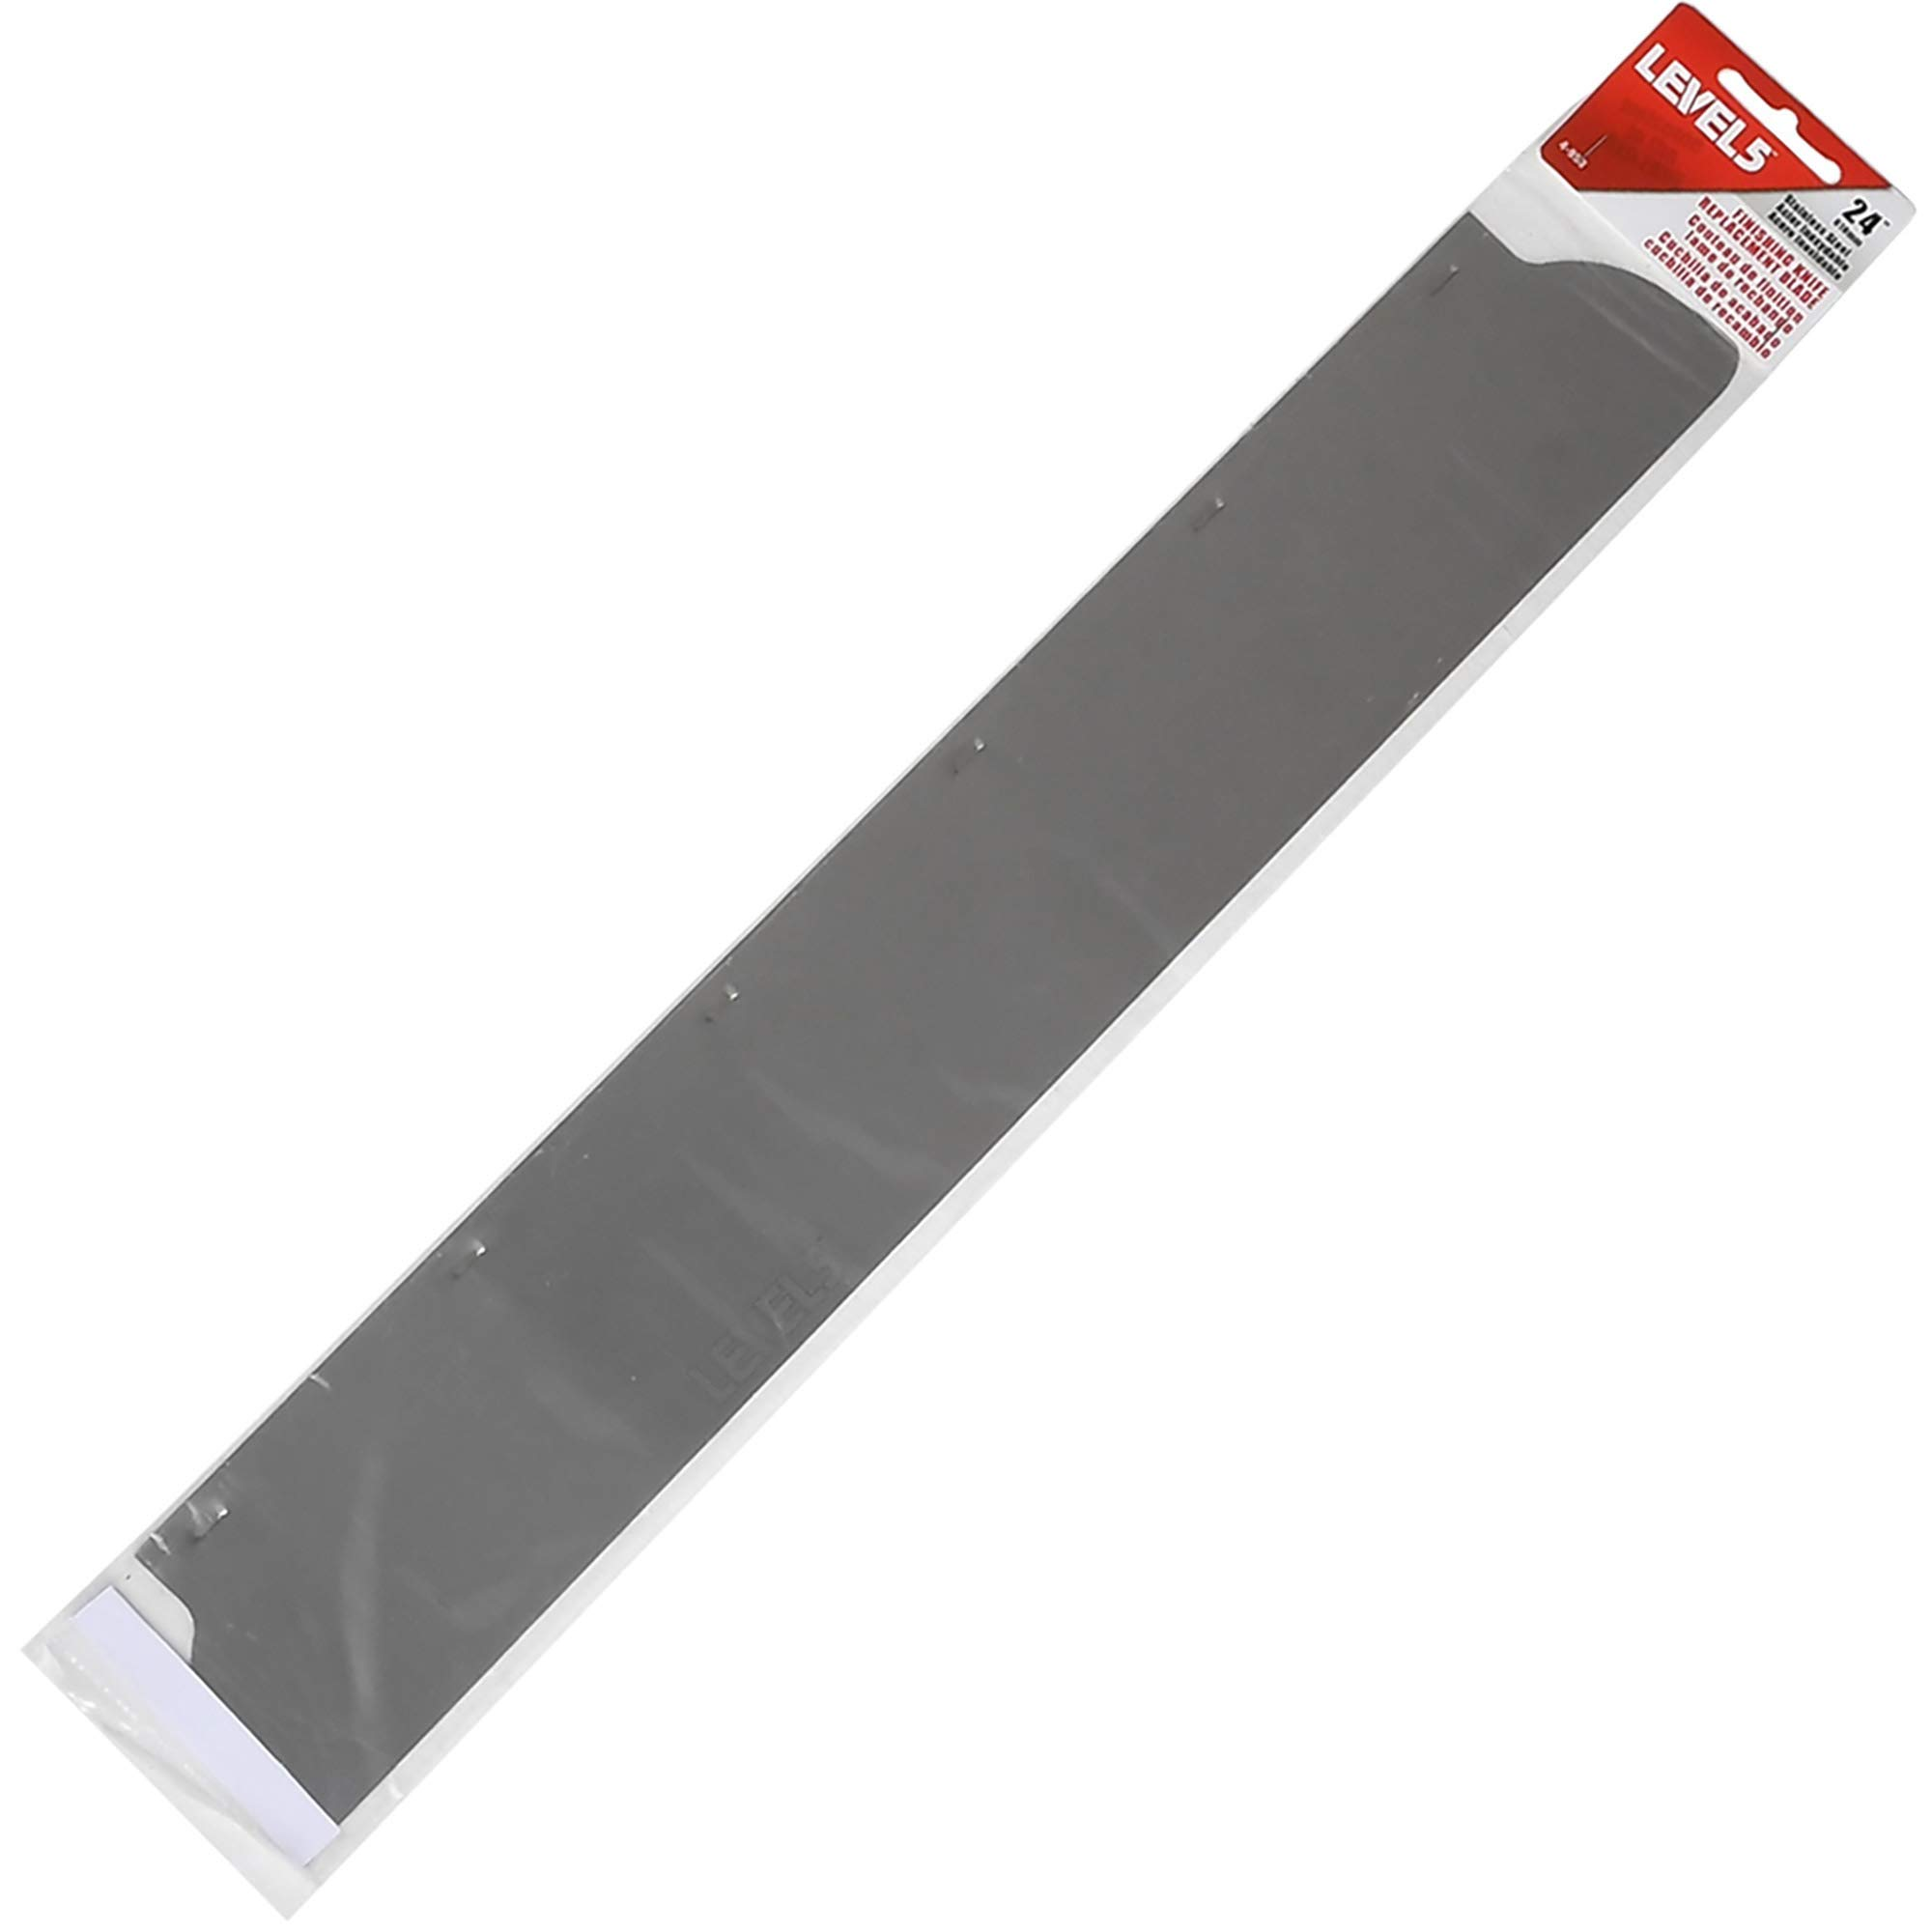 24'' Replacement Skimming Blade Insert - LEVEL5